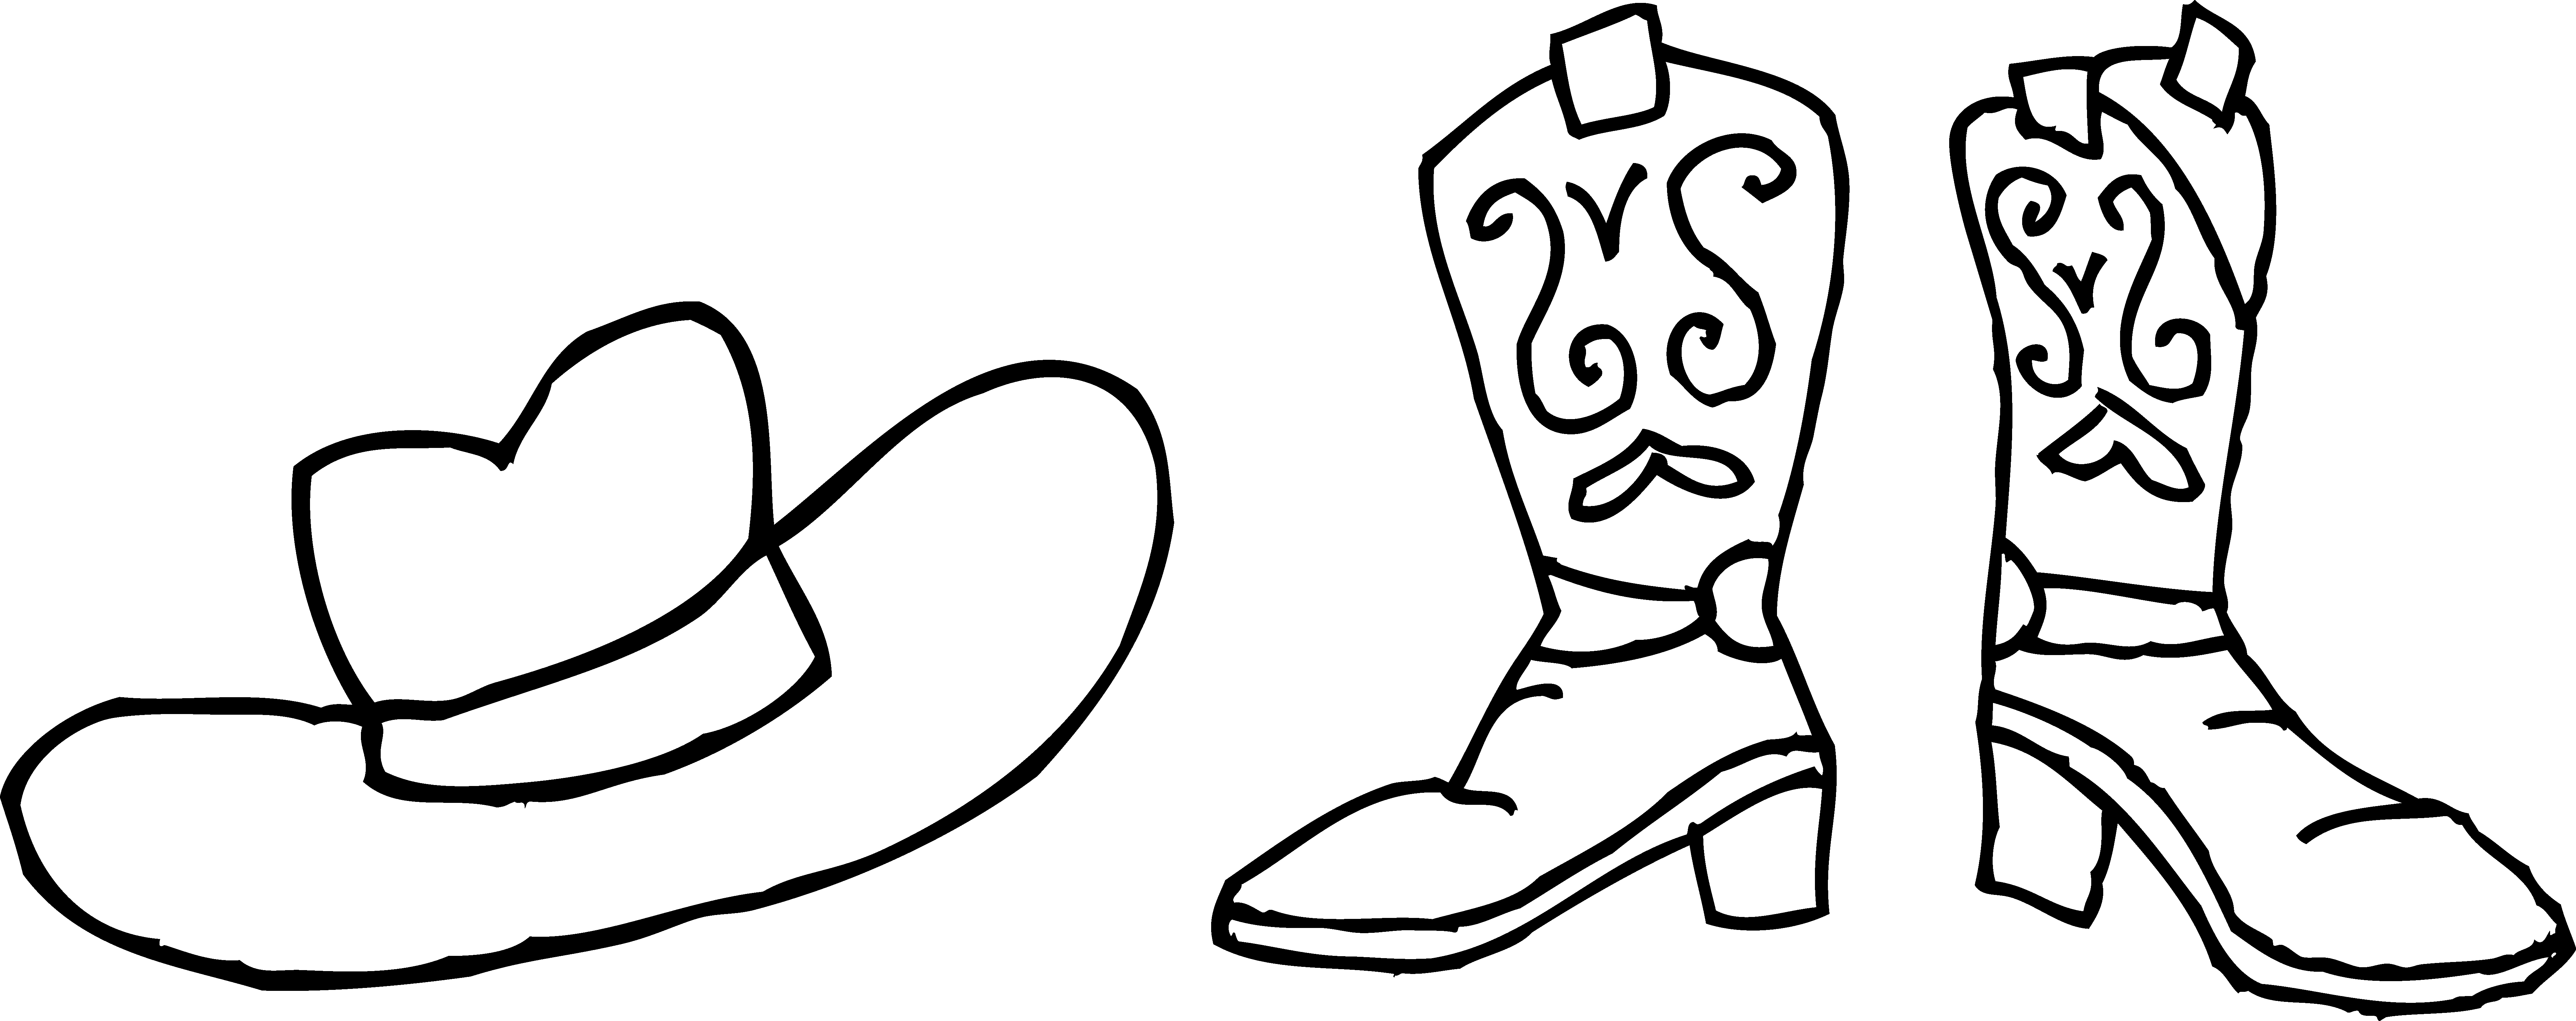 clip freeuse download Cowboy hat and boots. Boot clipart drawing